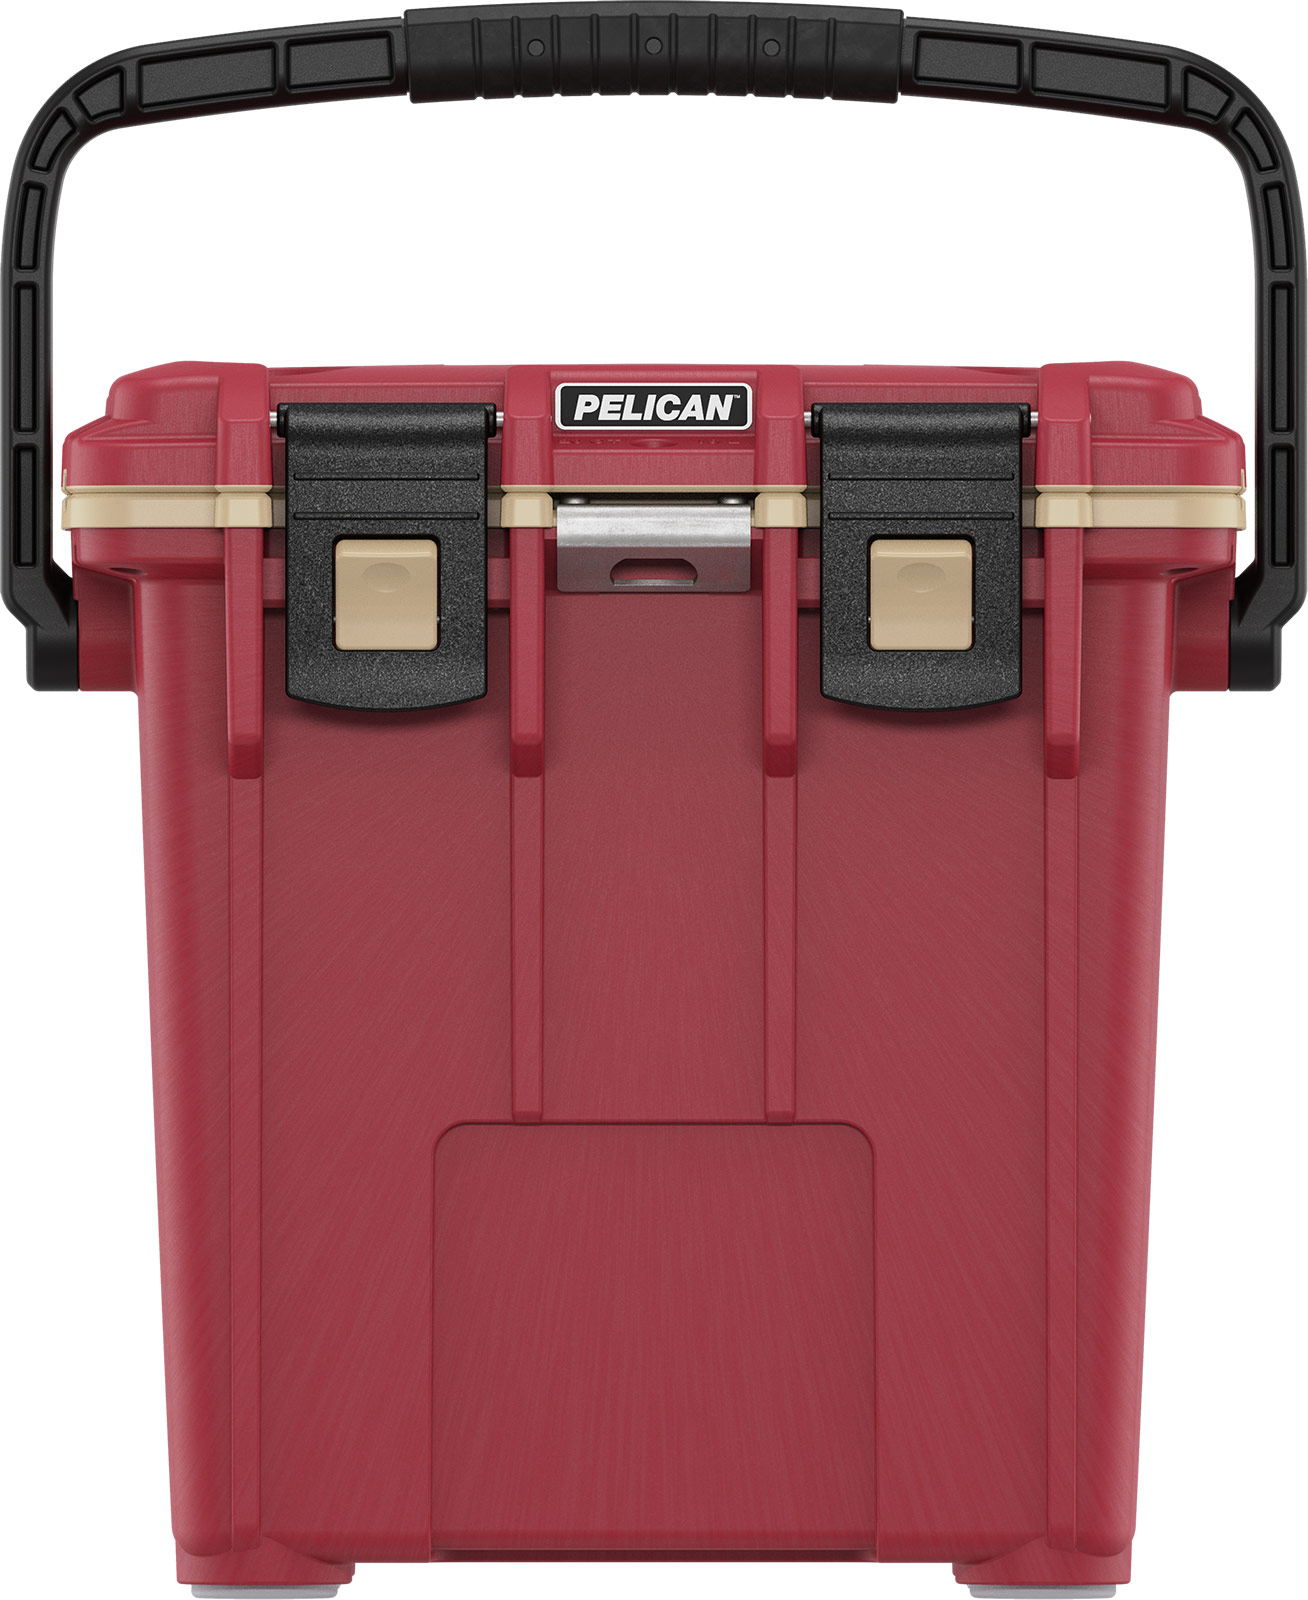 pelican overloand cooler 20qt canyon red